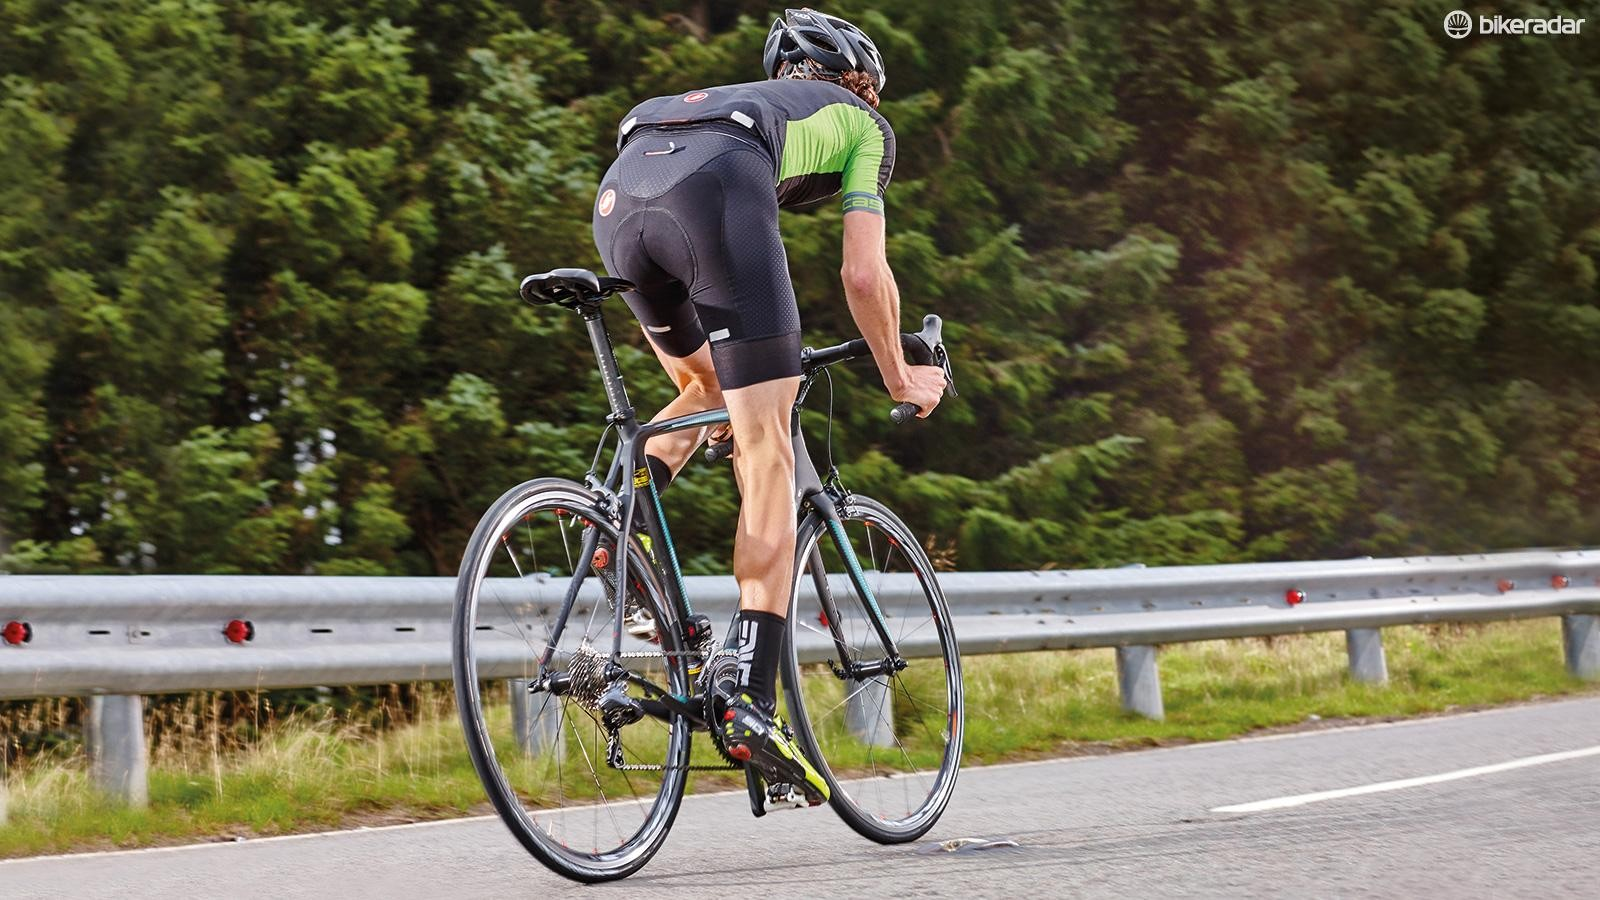 Tempo work can really make a difference when it comes to maintaining high-intensity riding performance — don't sell yourself short by avoiding it